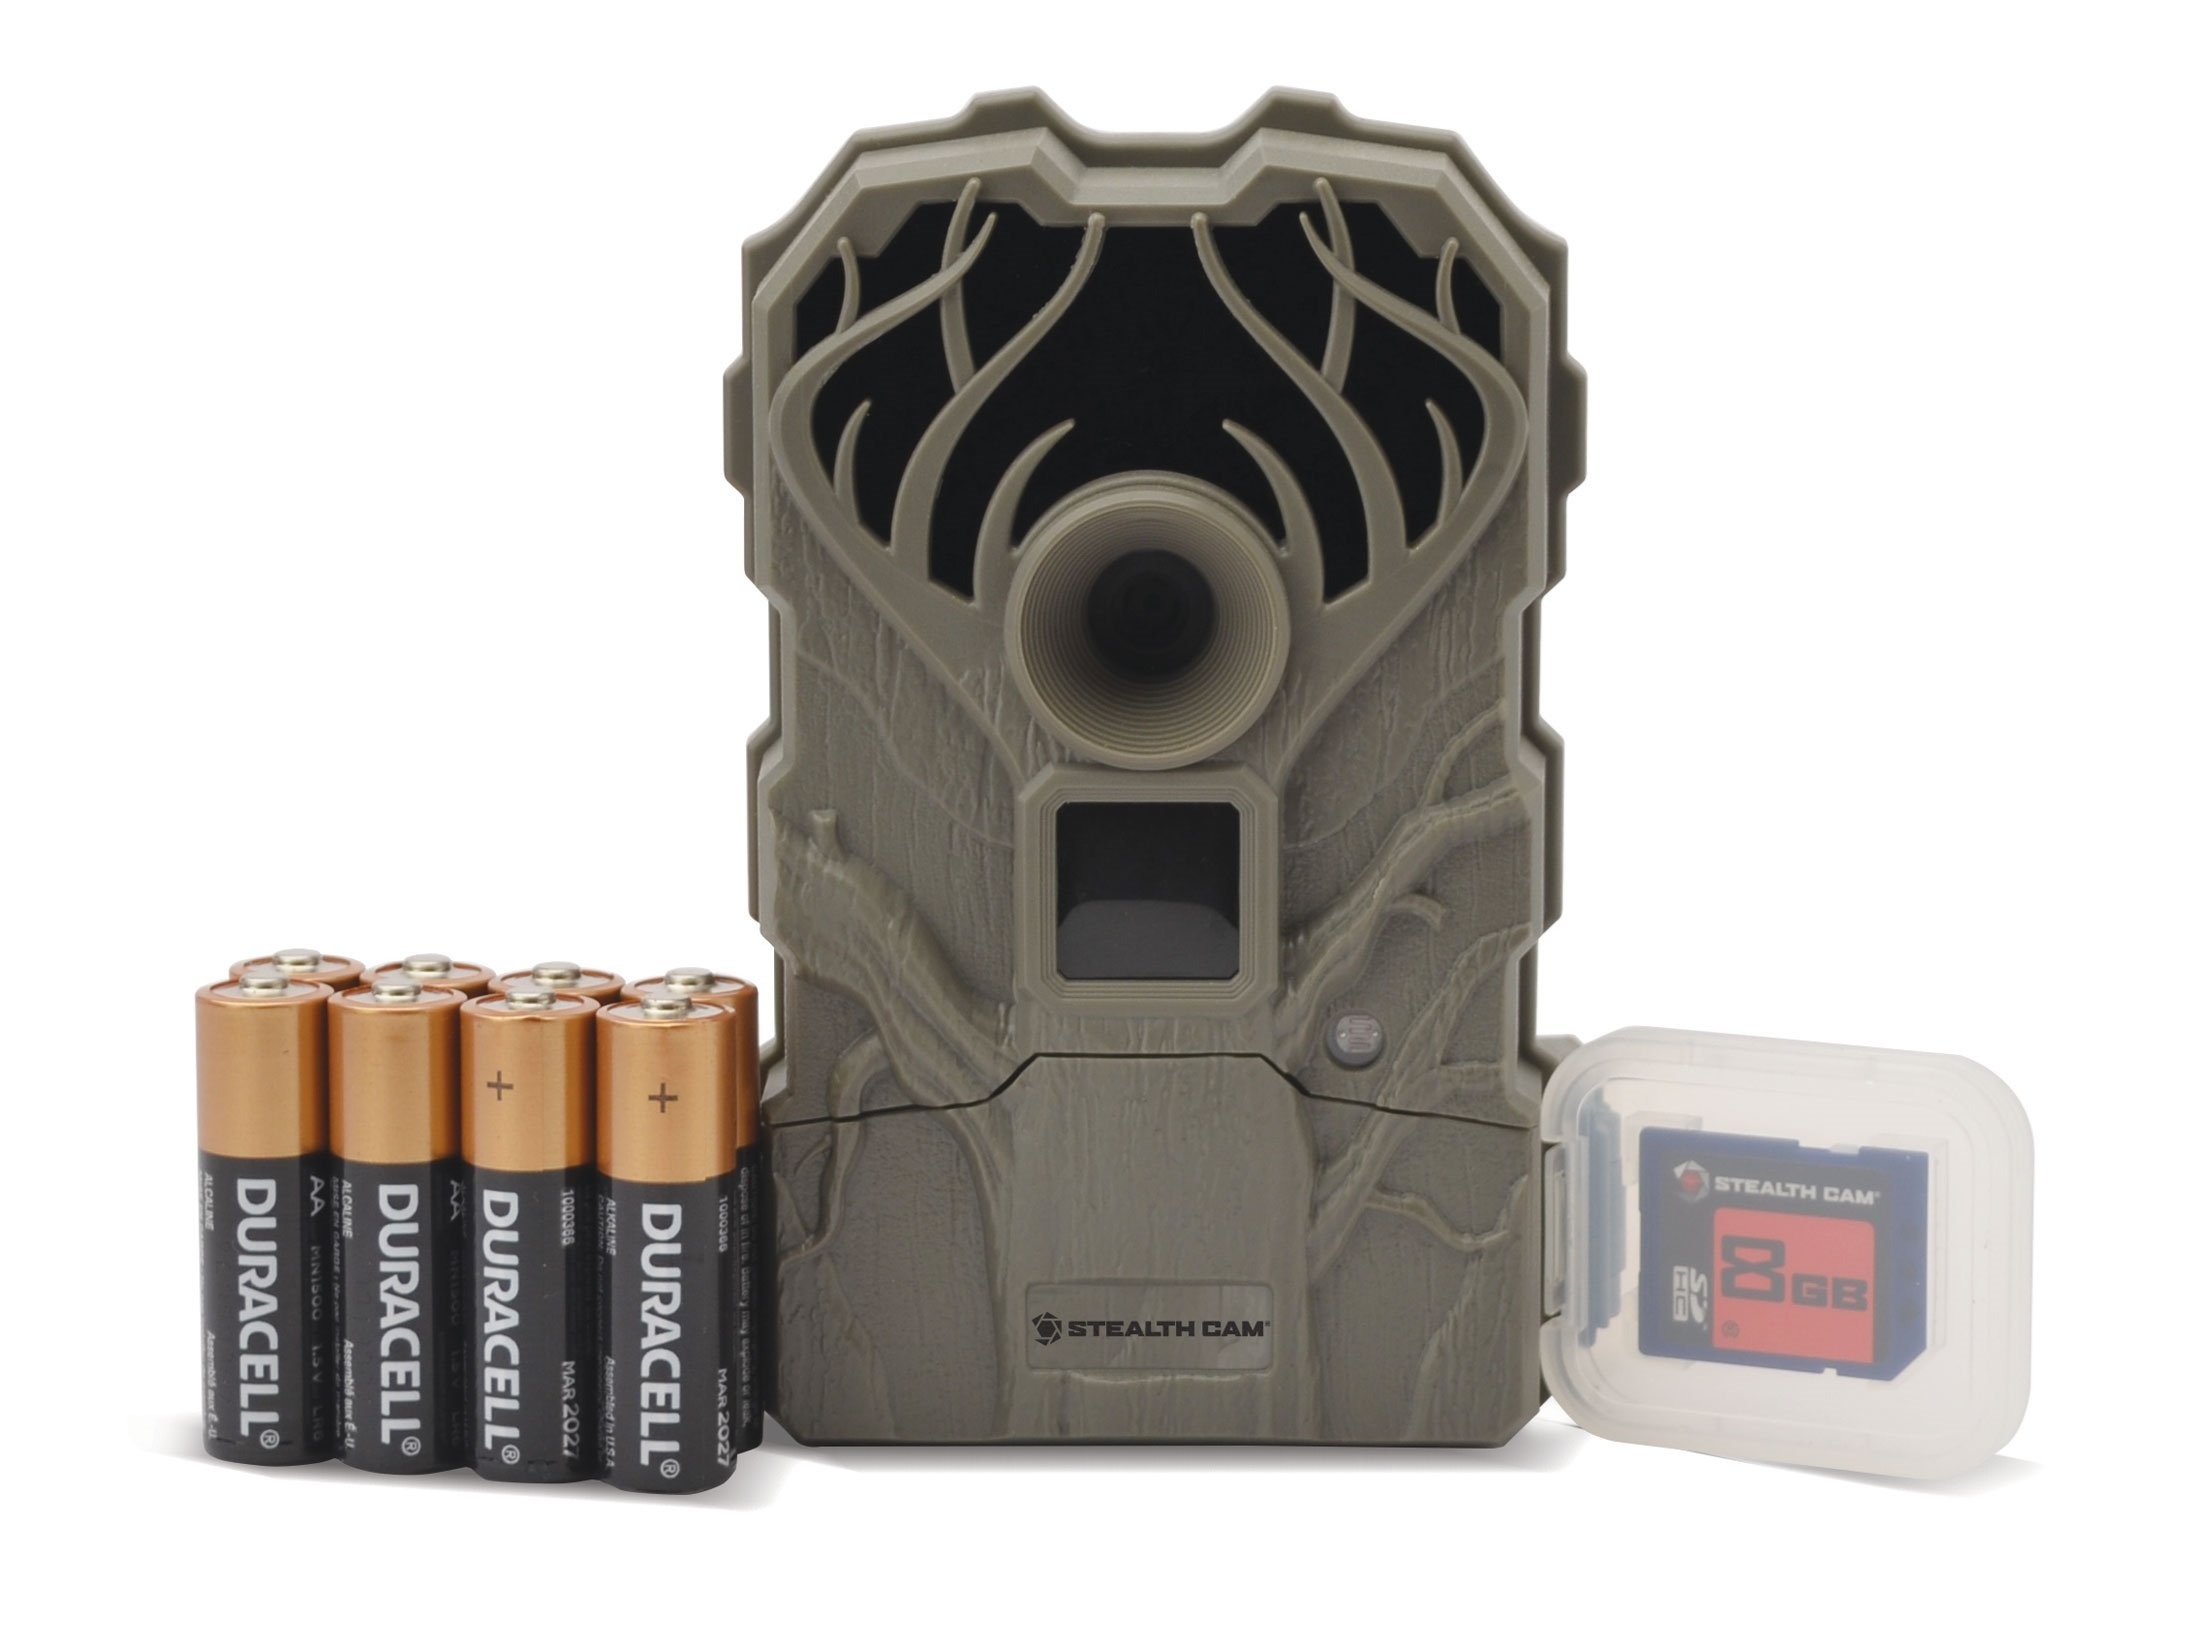 Stealth Cam Q2-USA Ultra Low Glo Infrared Game Camera Combo 12 Megapixel Gray